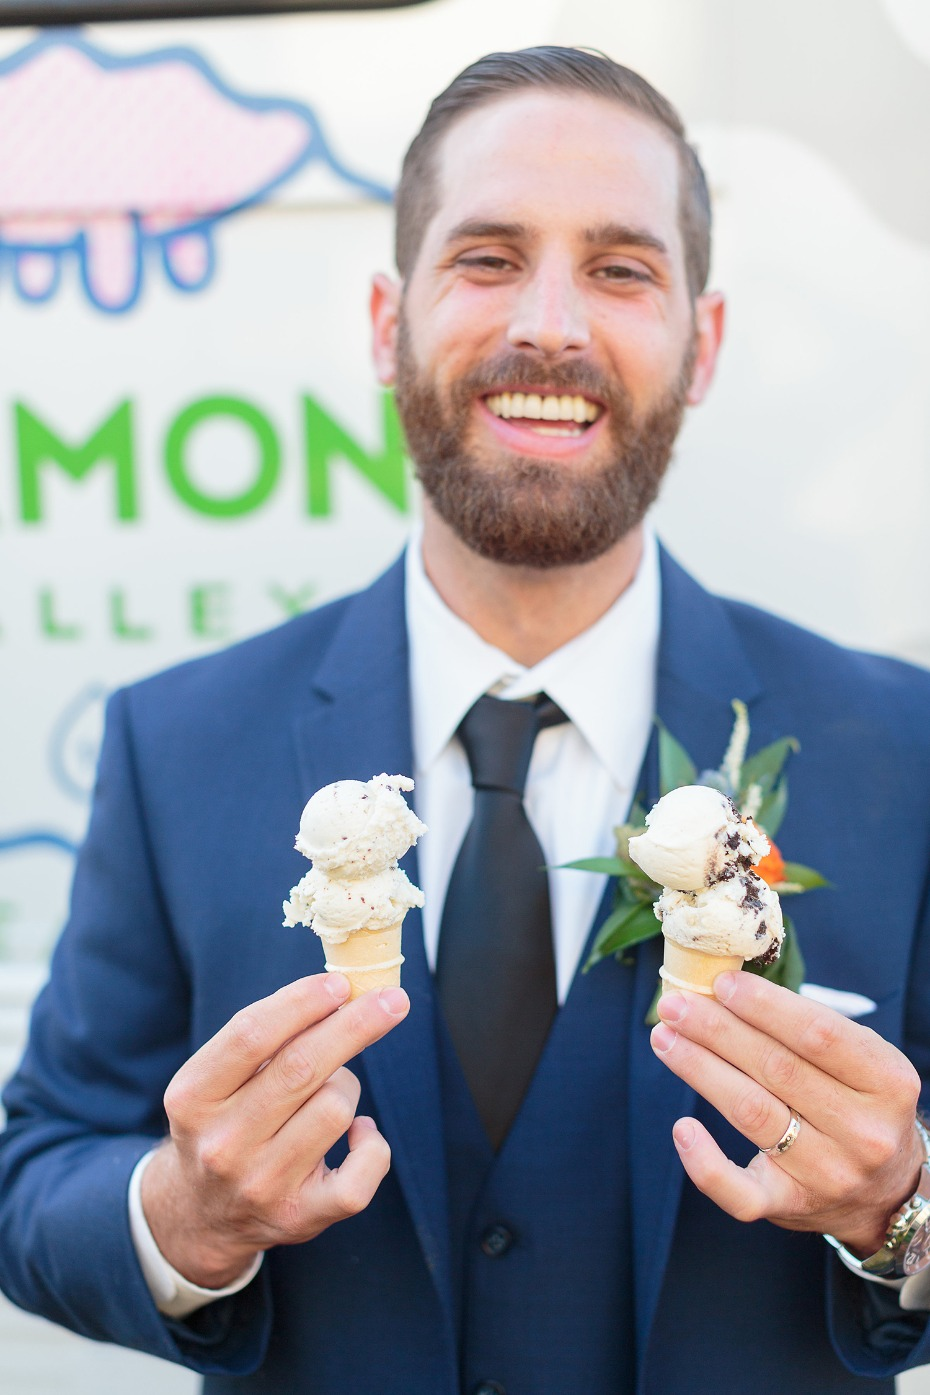 Get an ice cream truck for your wedding